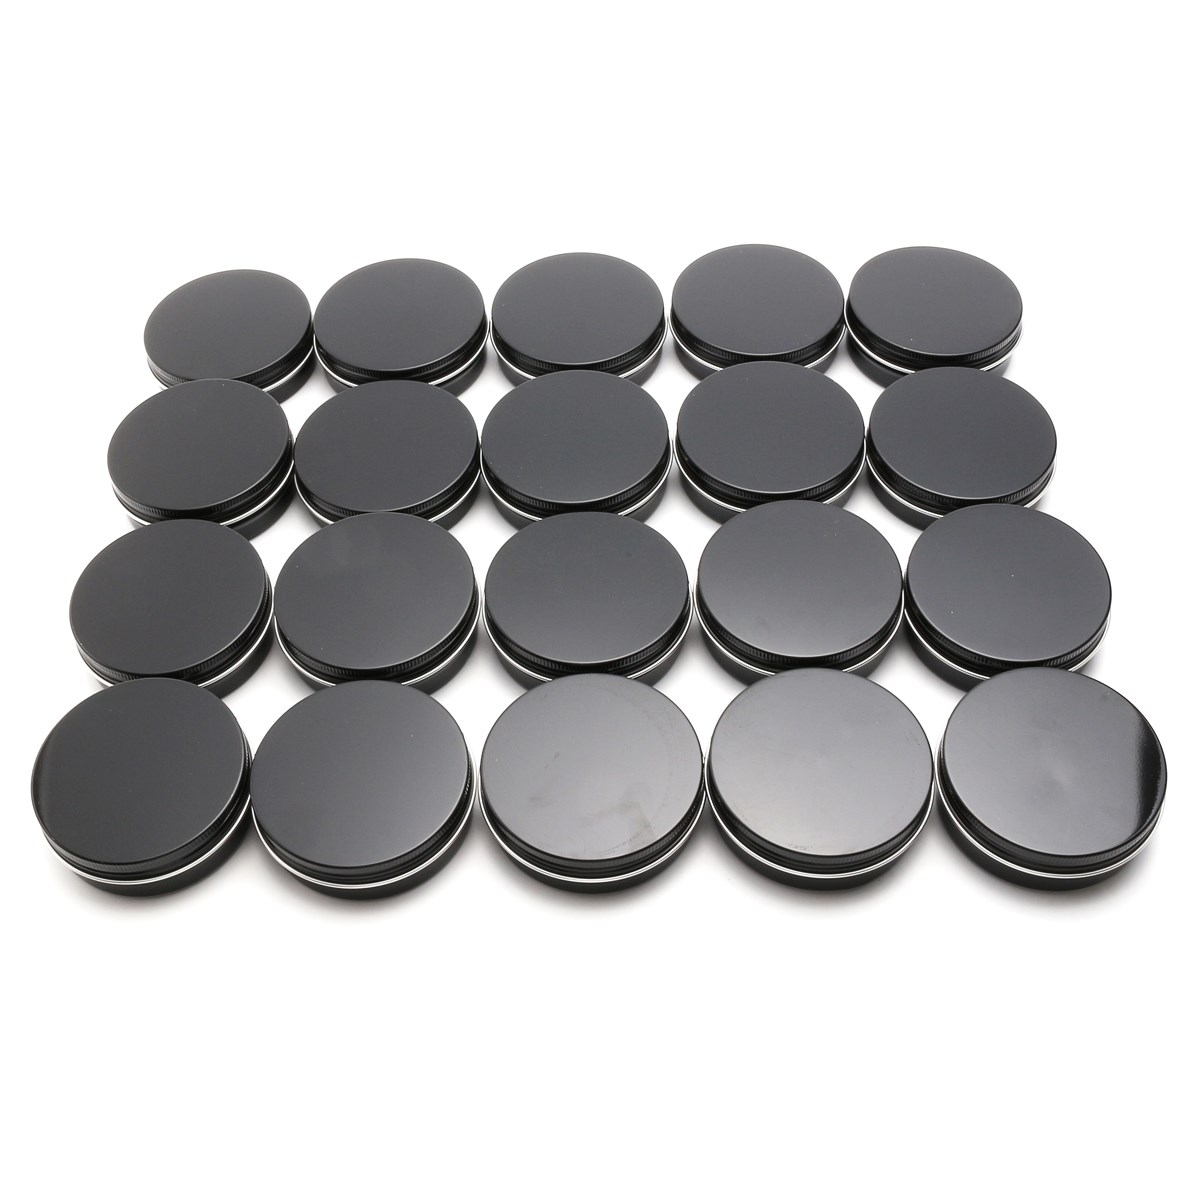 20pcs 100ML Empty Cosmetic Cream Jars Aluminum Black Round Screw Thread Jar Cosmetics Packaging Container Lip Balm Pot Bottle 200pcs x 200g big frosted abs plastic cosmetic packaging bath salt jar with wooden spoon